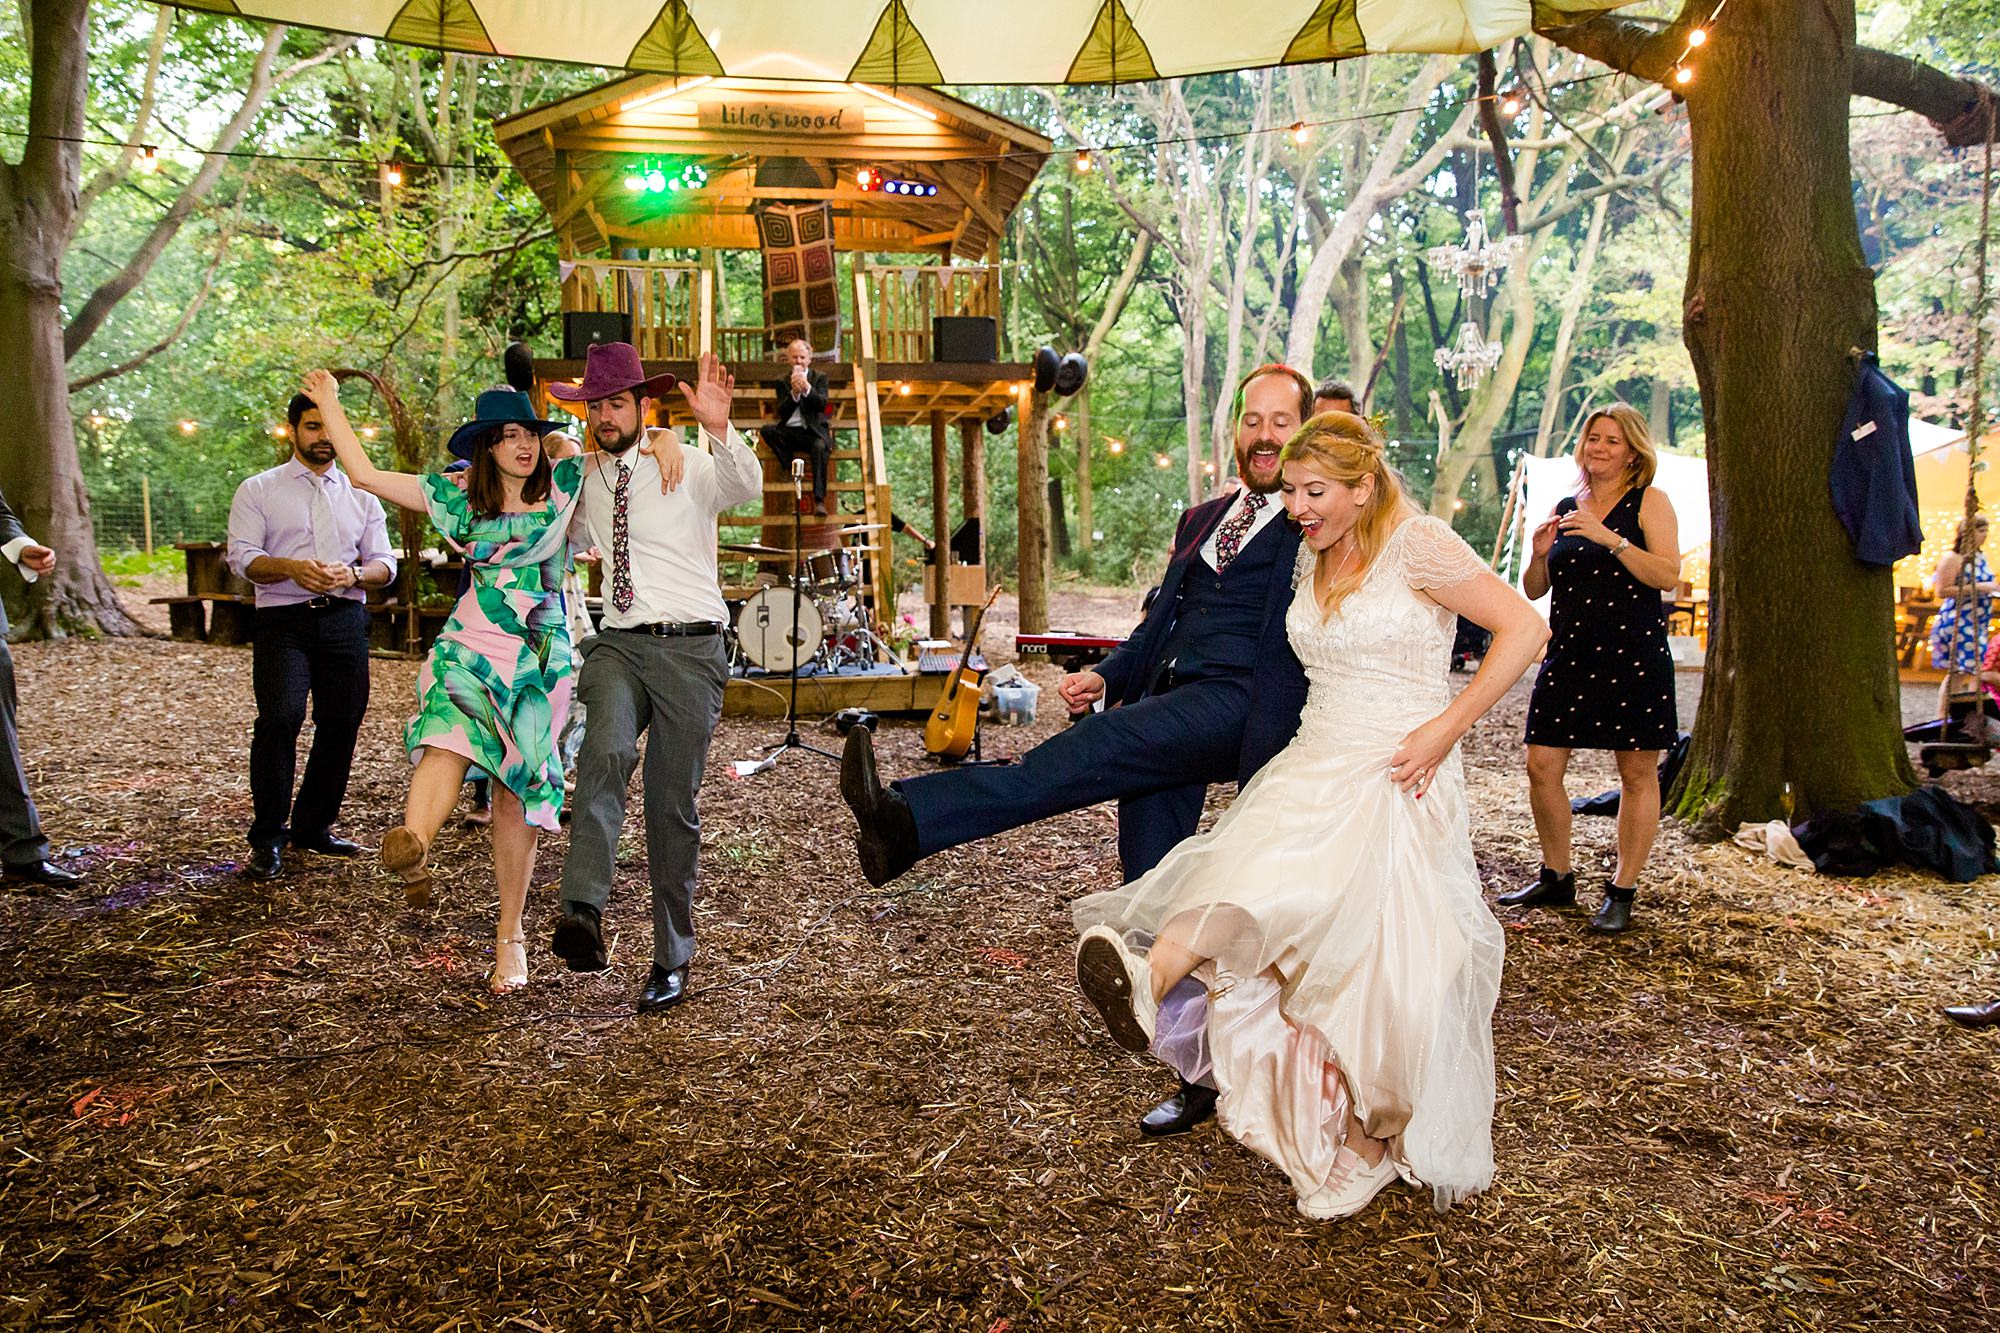 Woodland Weddings Tring swing wedding dancing